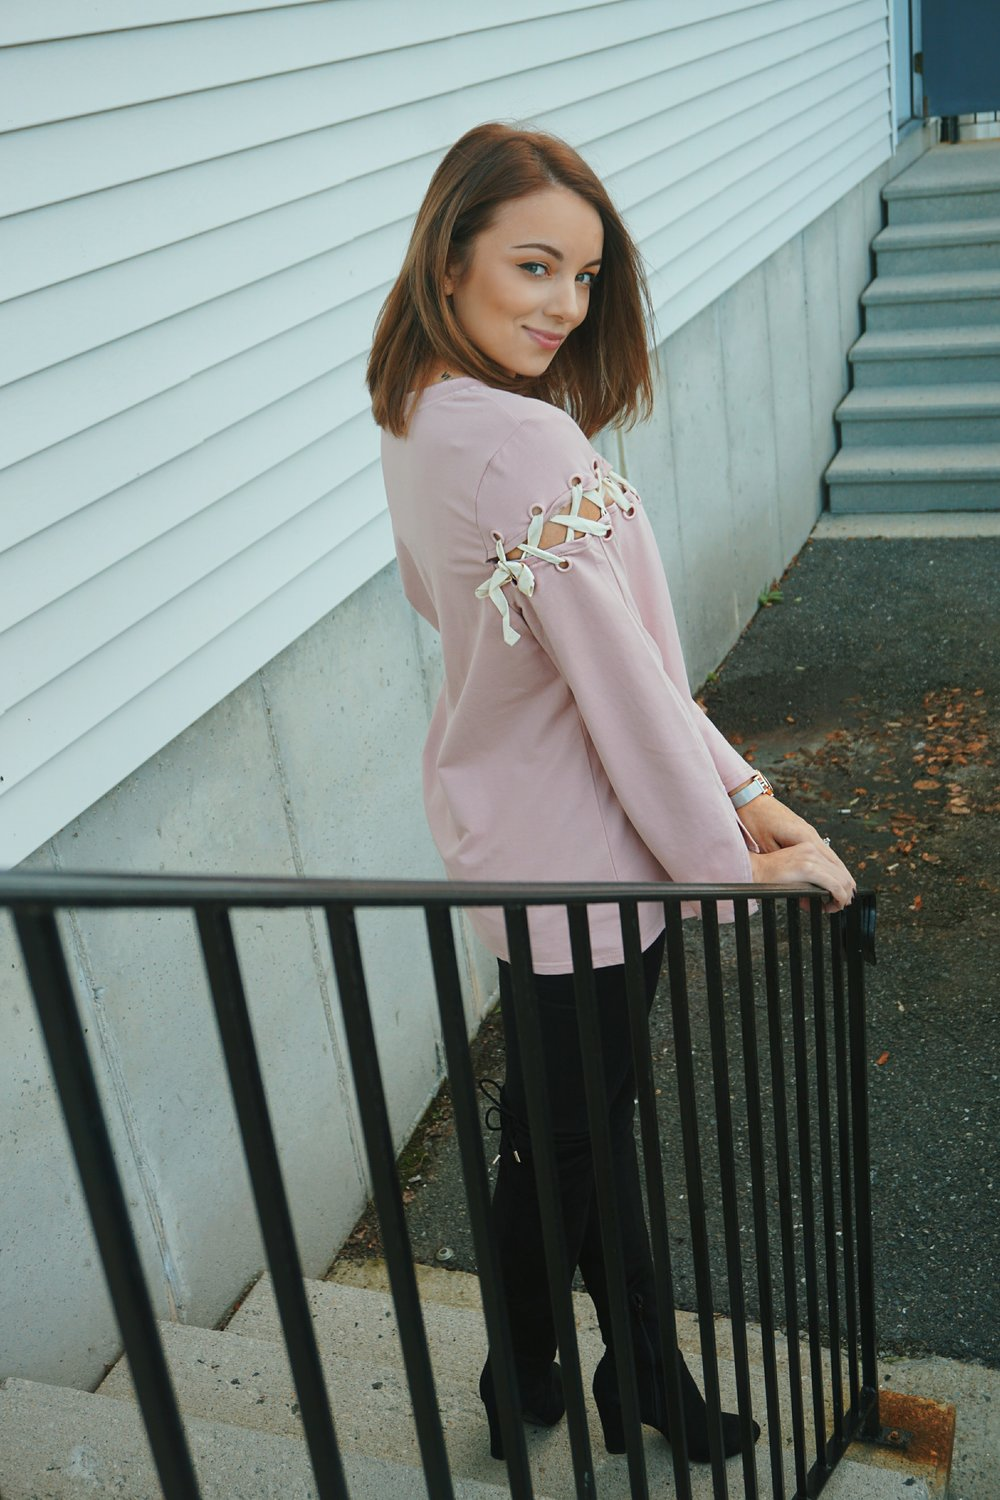 A blogger posing on the steps, wearing a pink long-sleeved top, black Jennifer Lopez jeans, and knee-high boots.